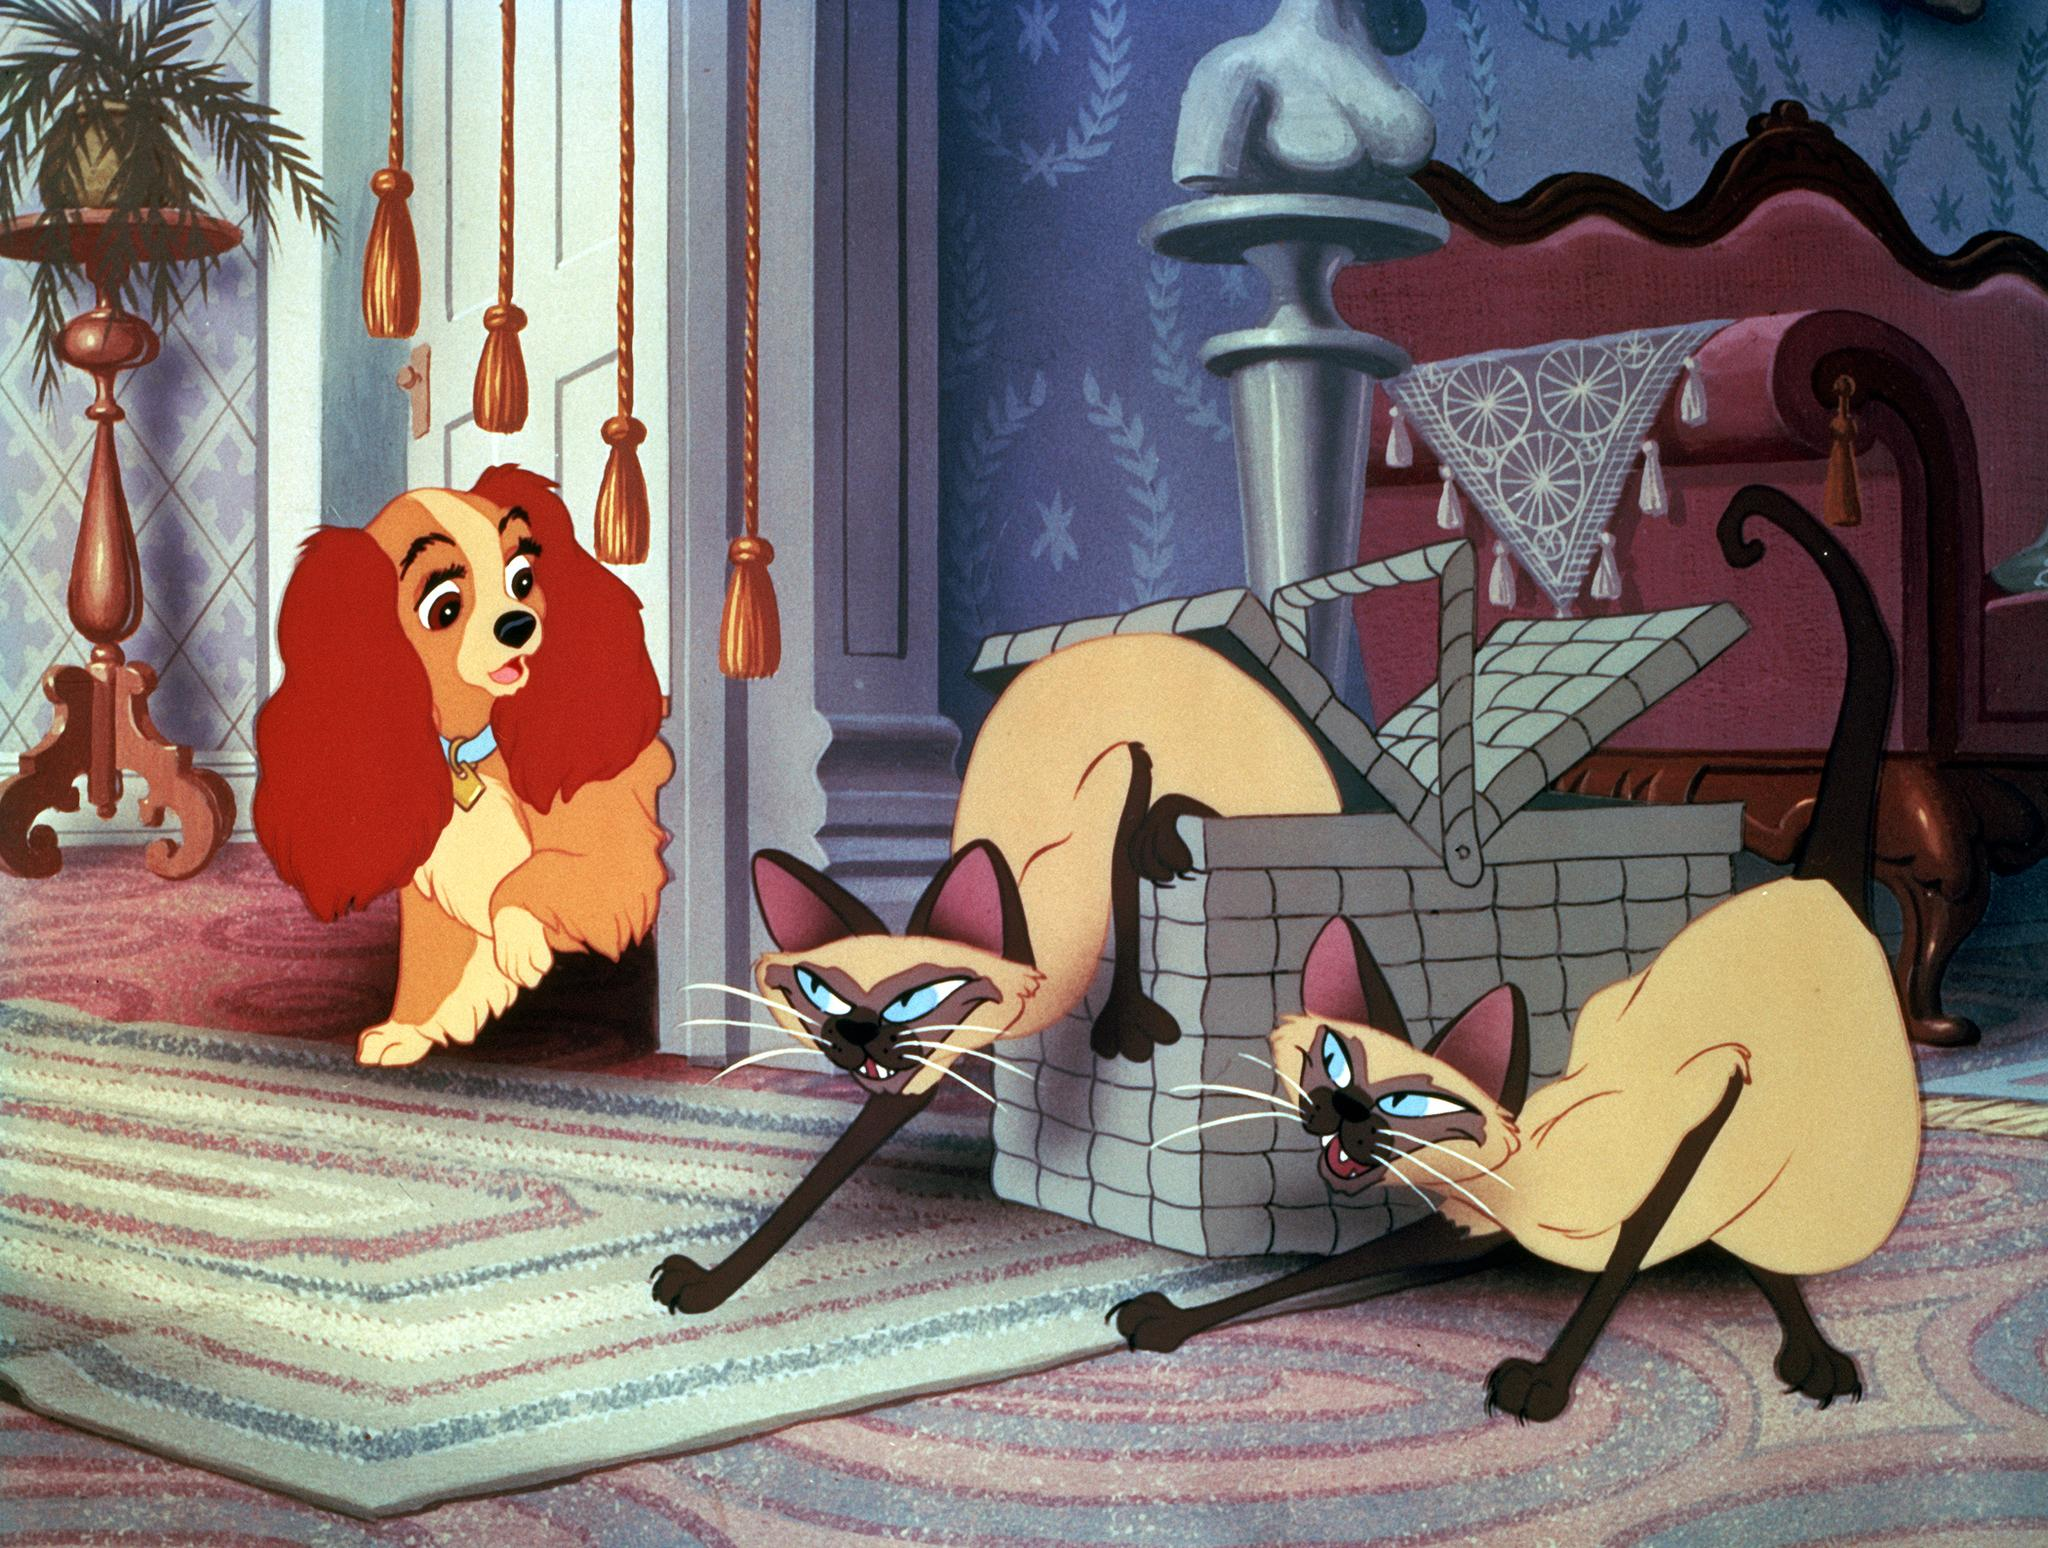 Lady And The Tramp Wallpapers Top Free Lady And The Tramp Backgrounds Wallpaperaccess